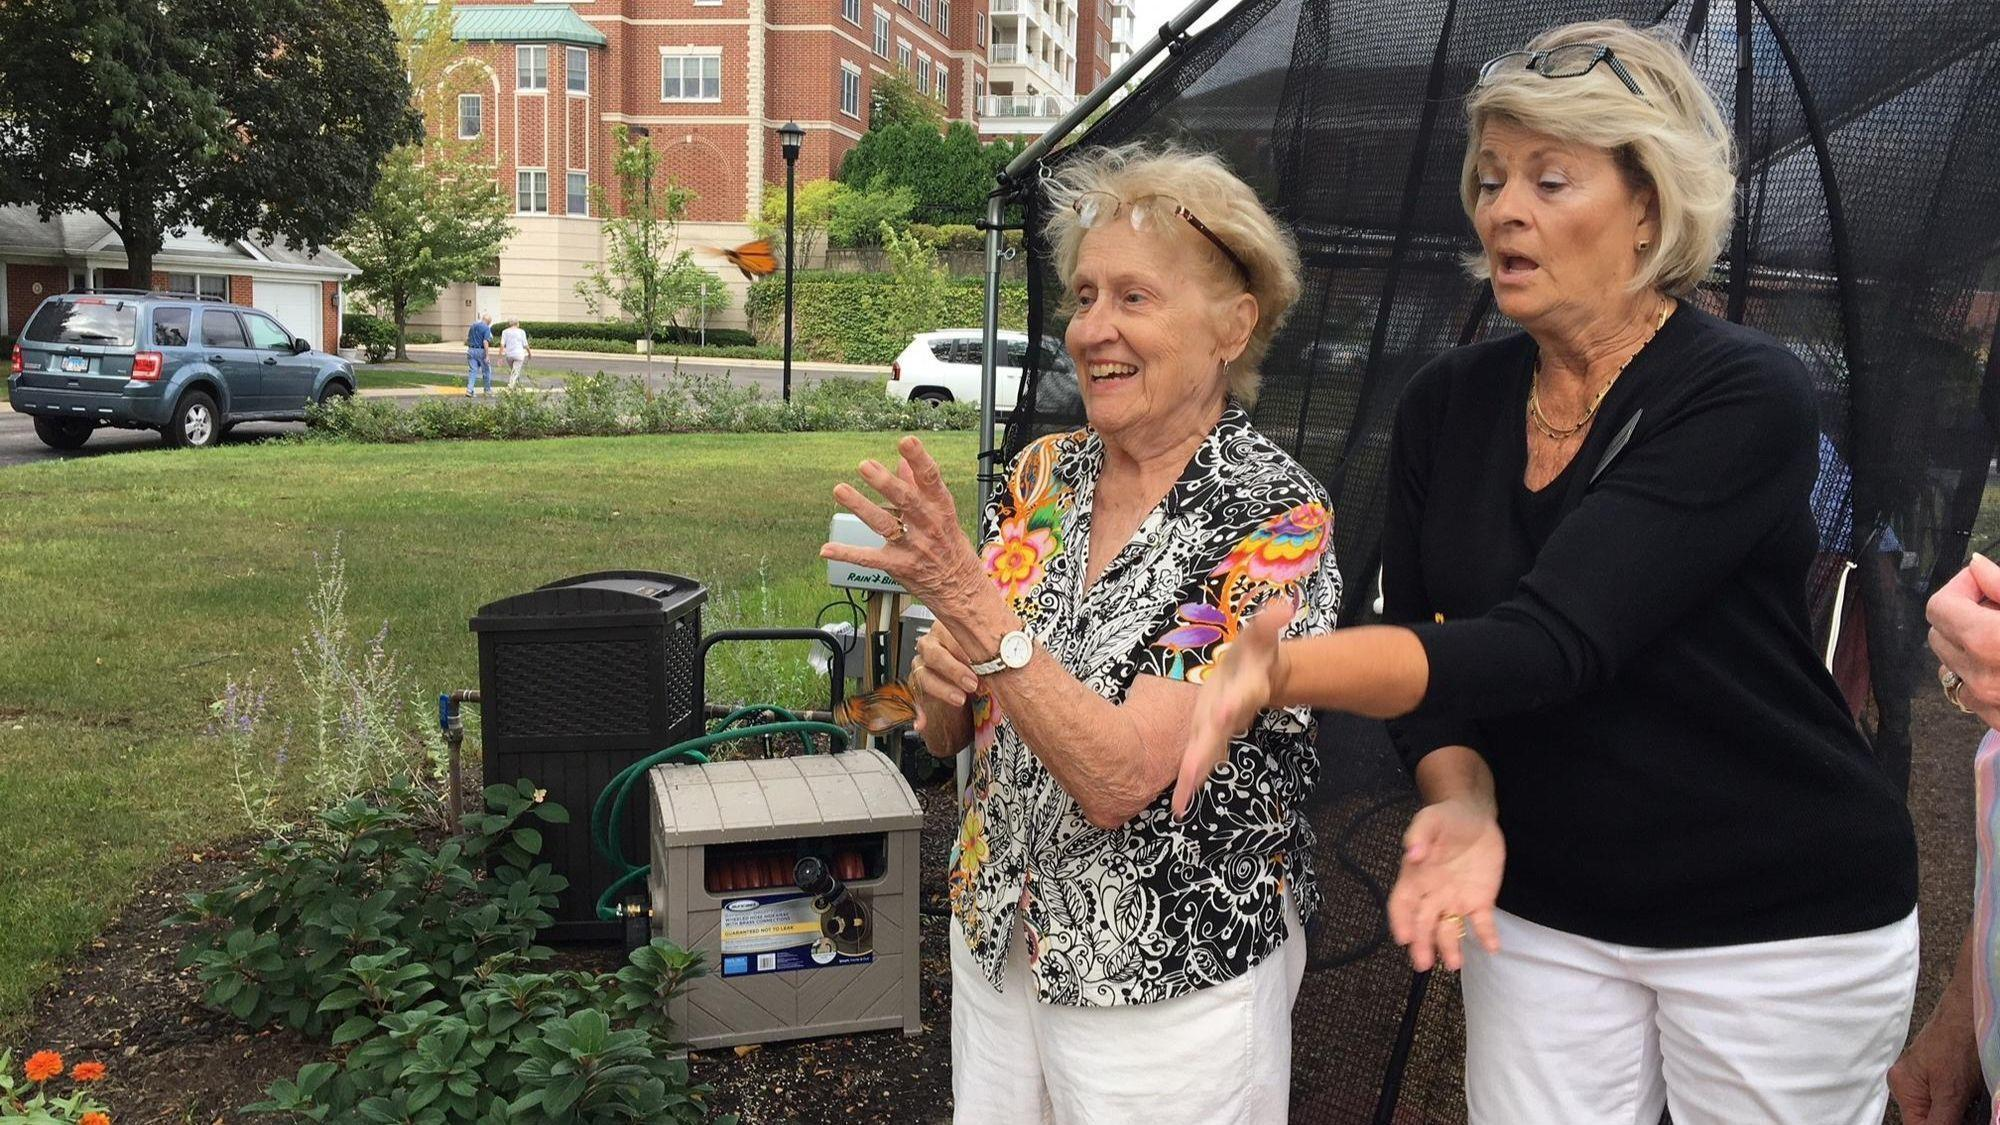 Monarchs from La Grange Park may be tracked to Mexico